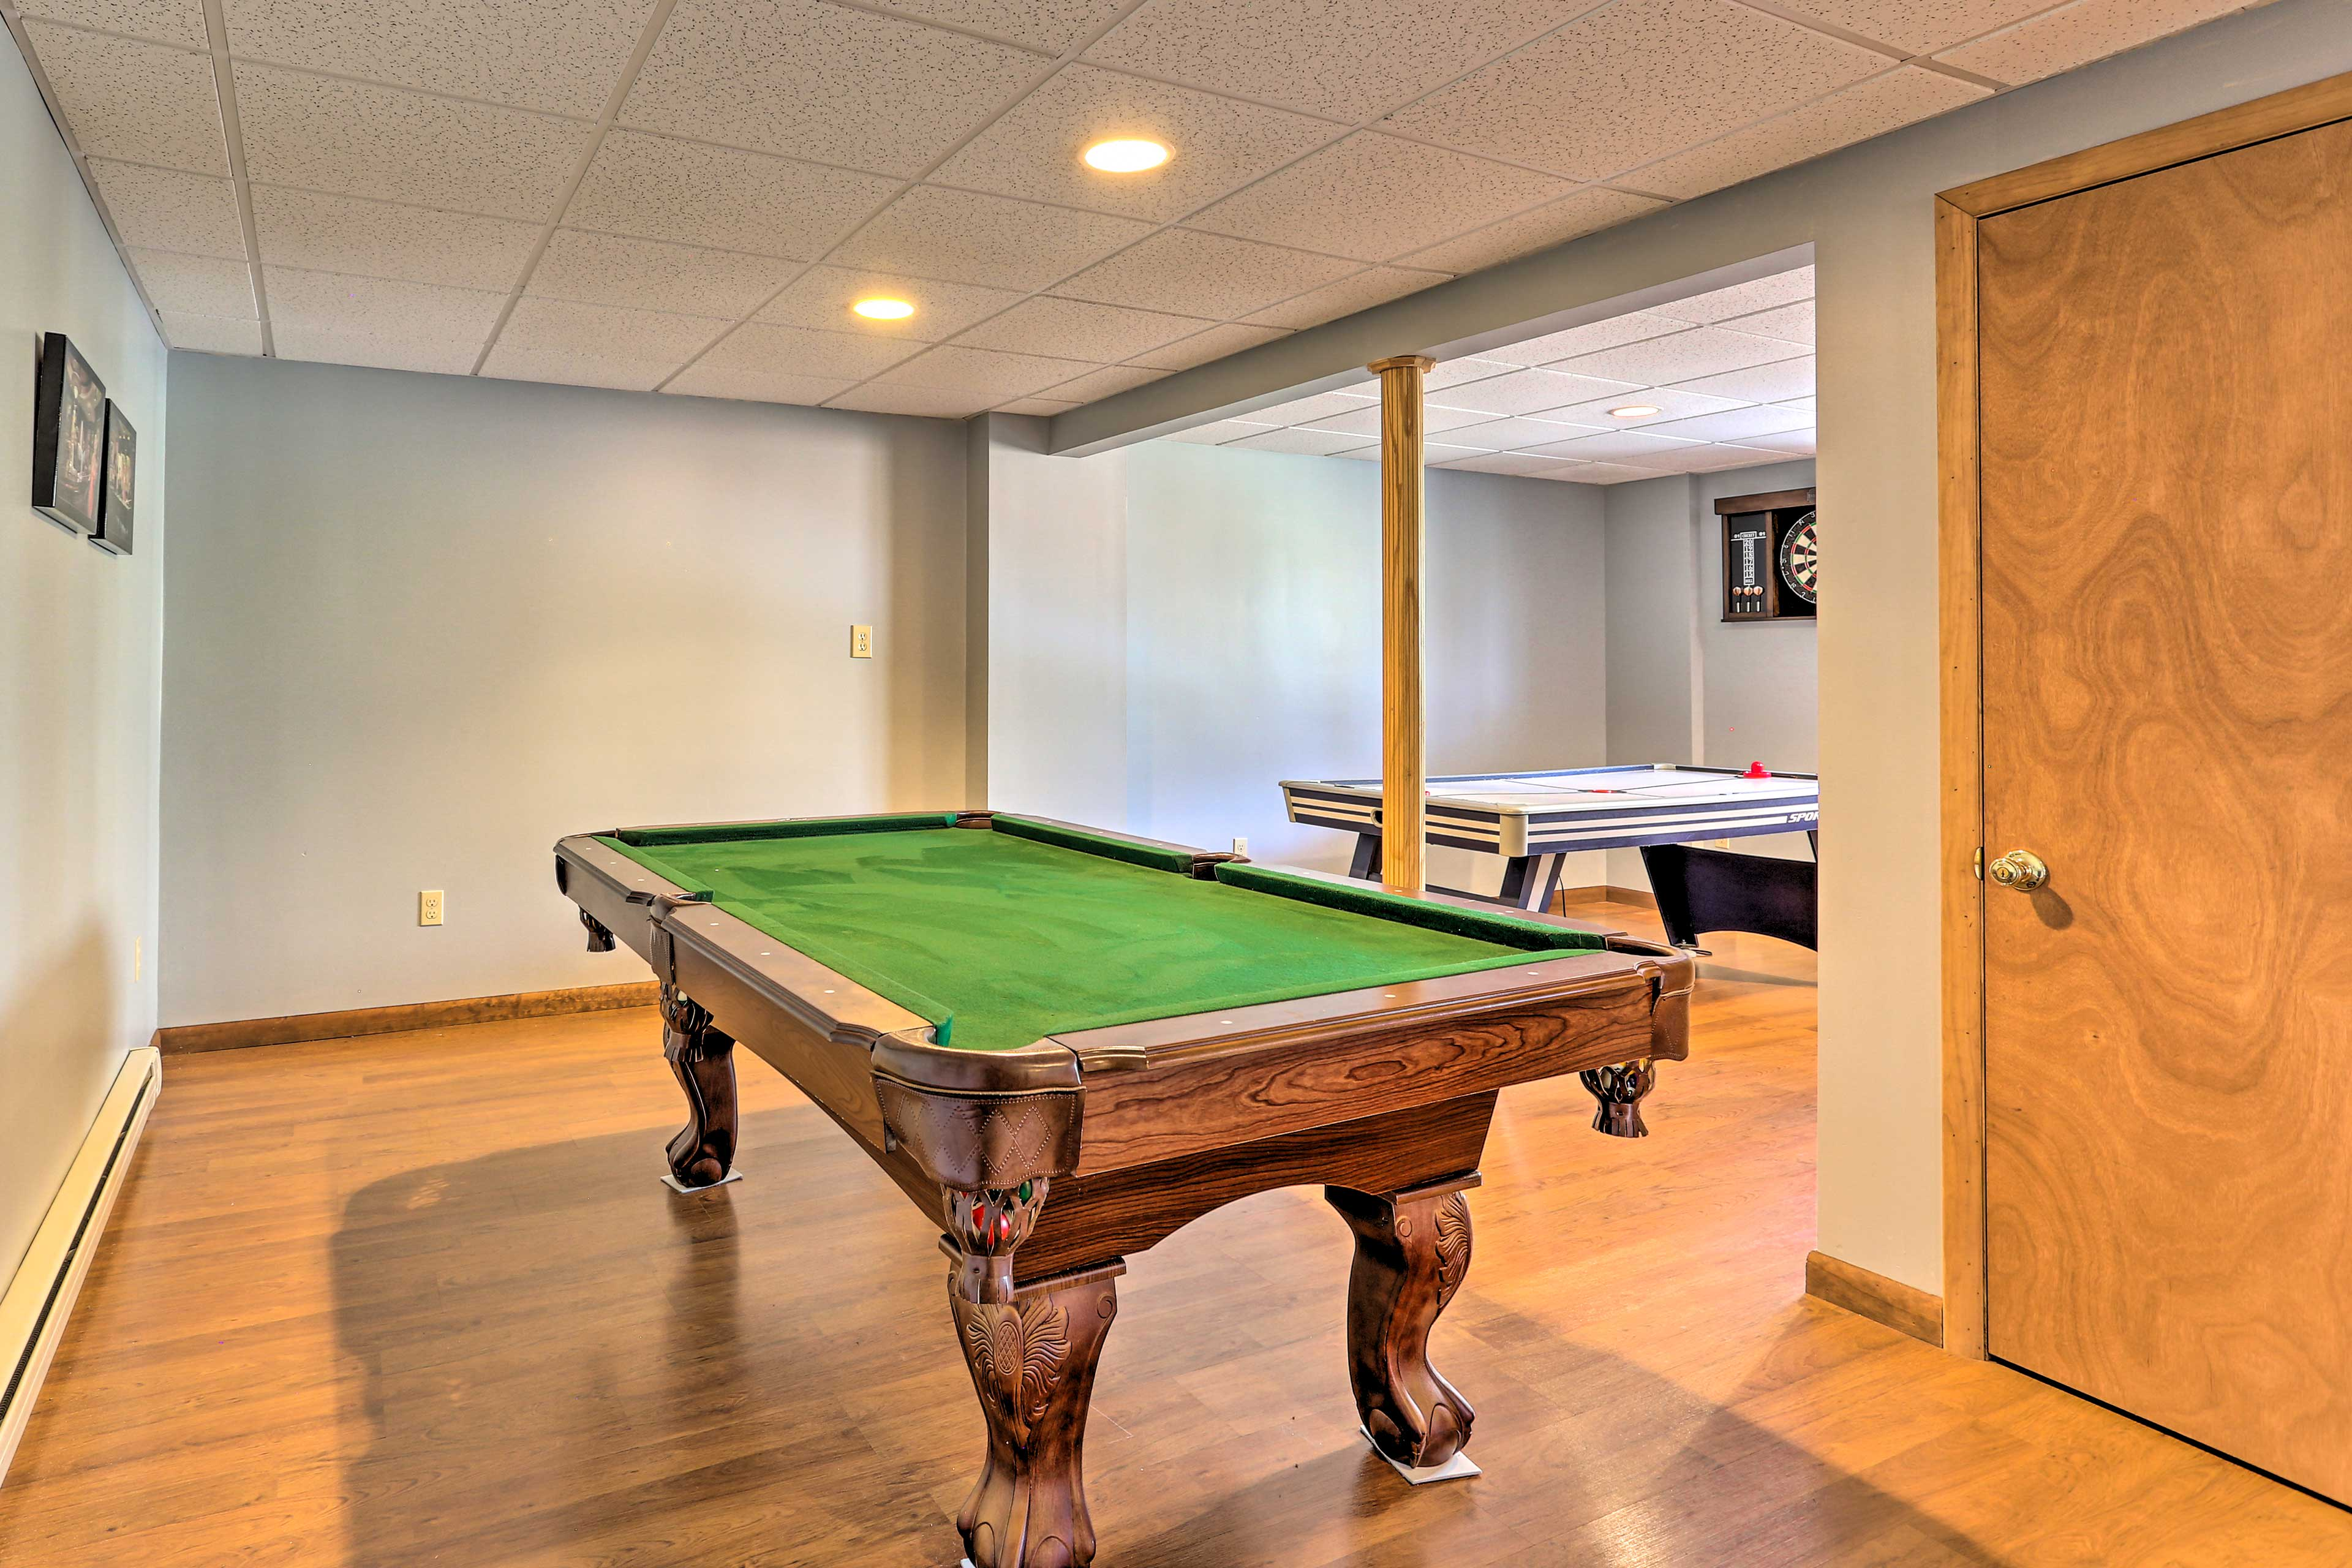 Downstairs in the game room you'll find a pool table and an air hockey table.